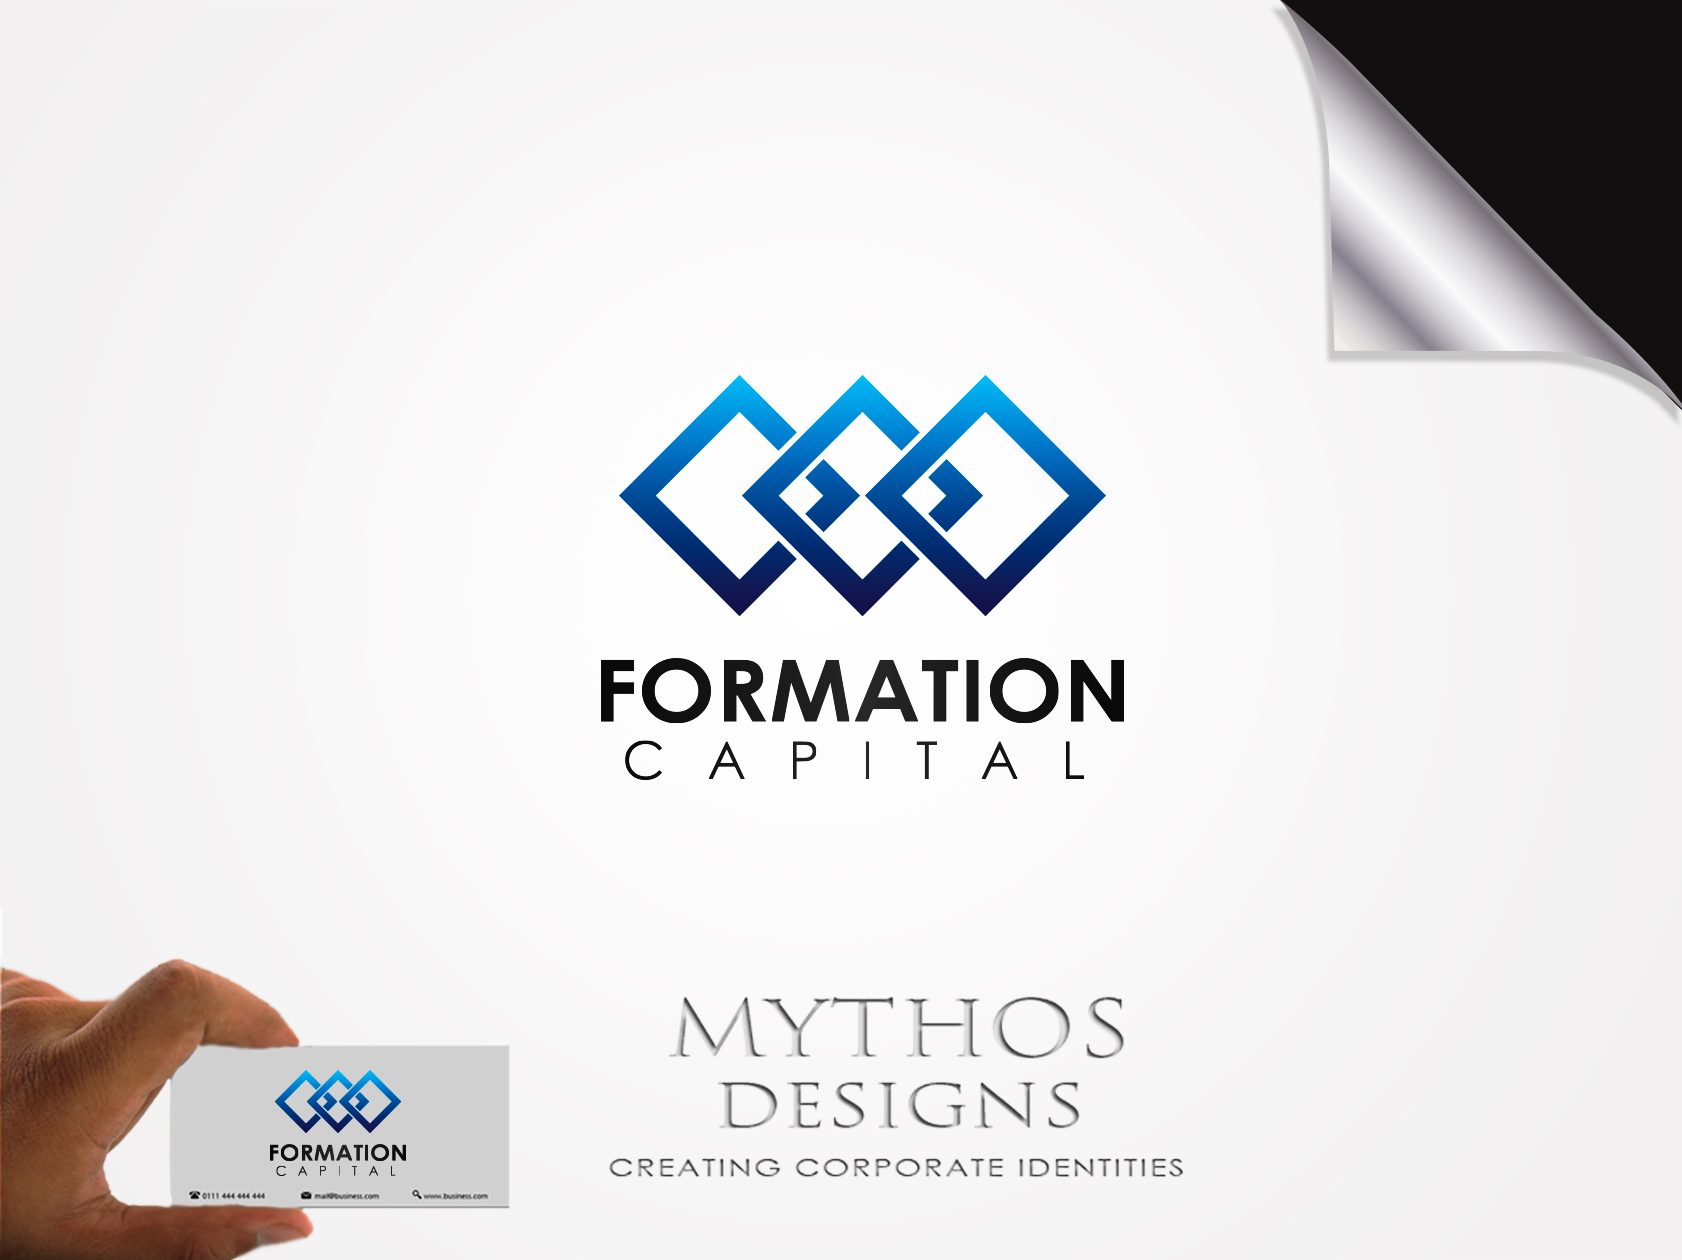 Logo Design by Mythos Designs - Entry No. 26 in the Logo Design Contest Inspiring Logo Design for Formation Capital.